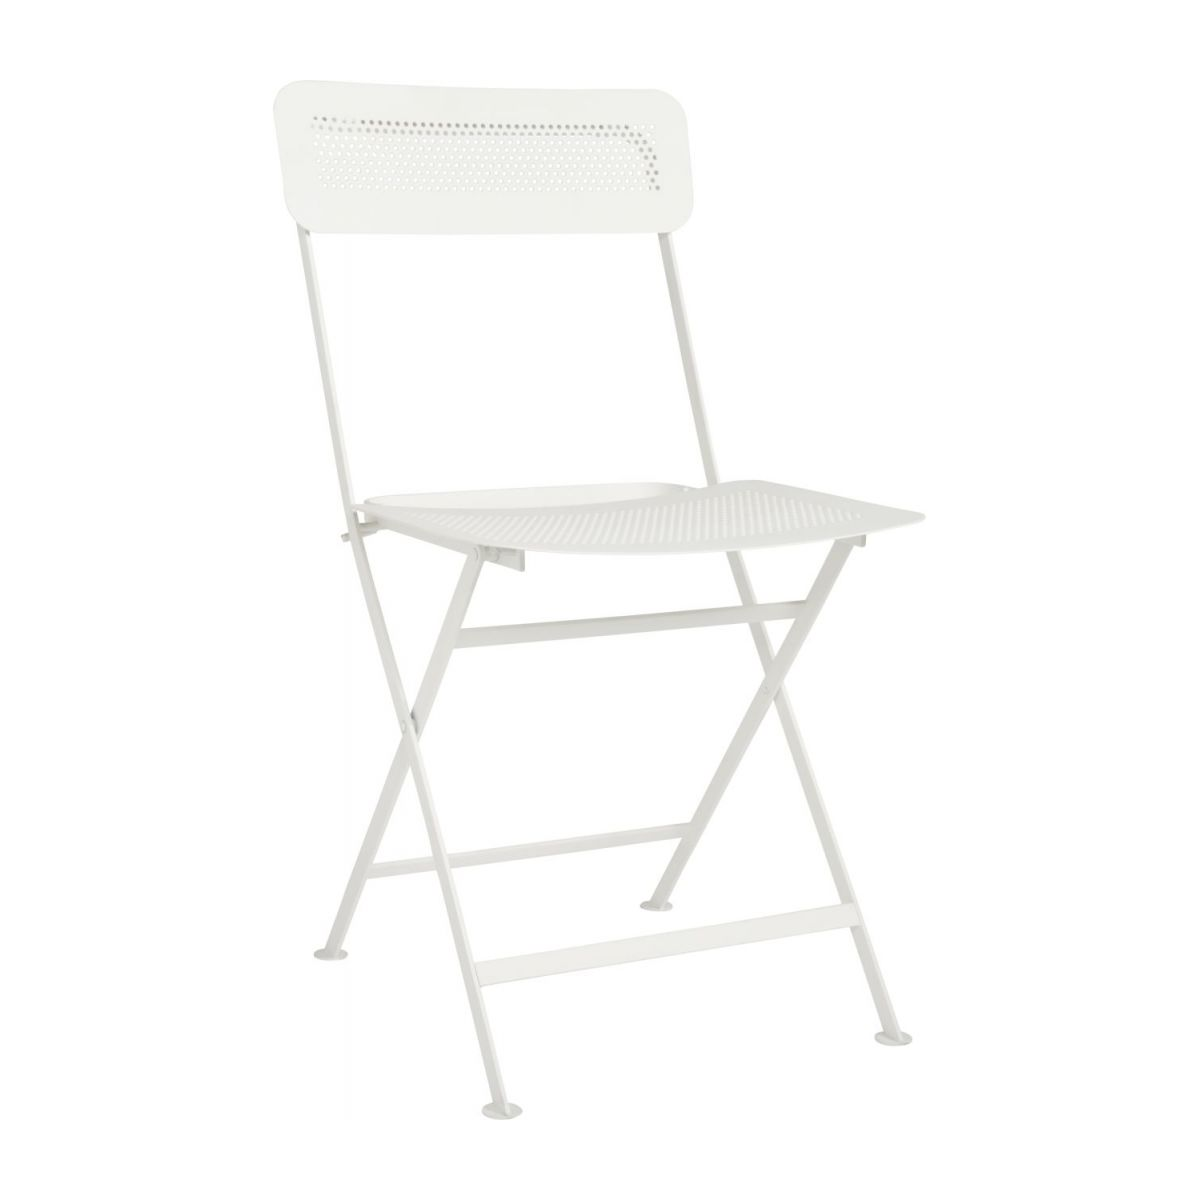 Folding chair made of metal, white n°1